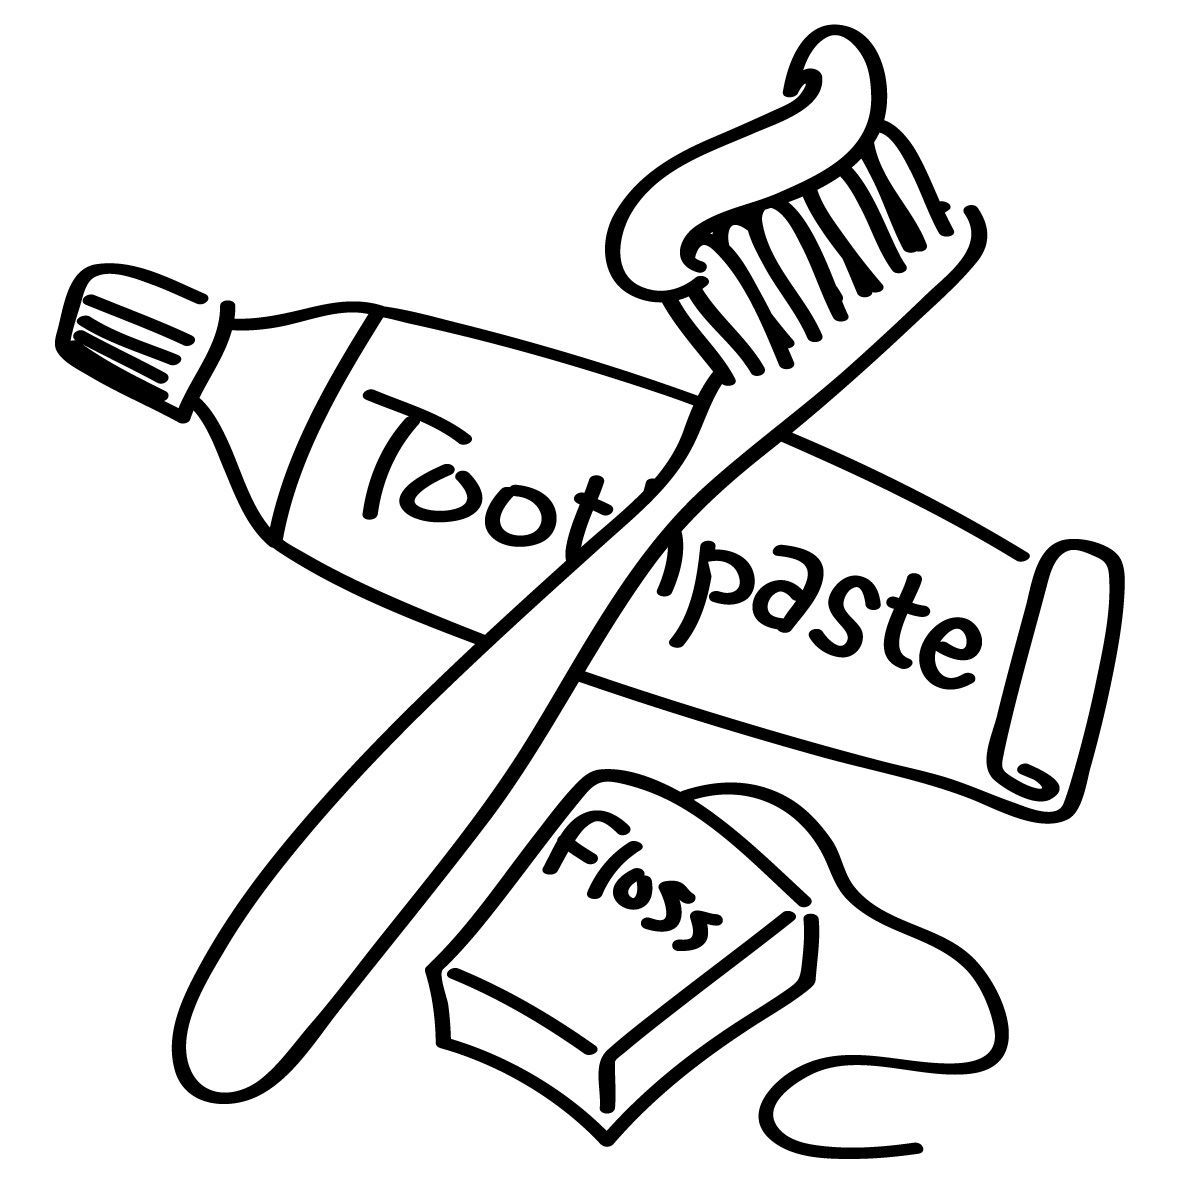 95+ Toothbrush Clipart.